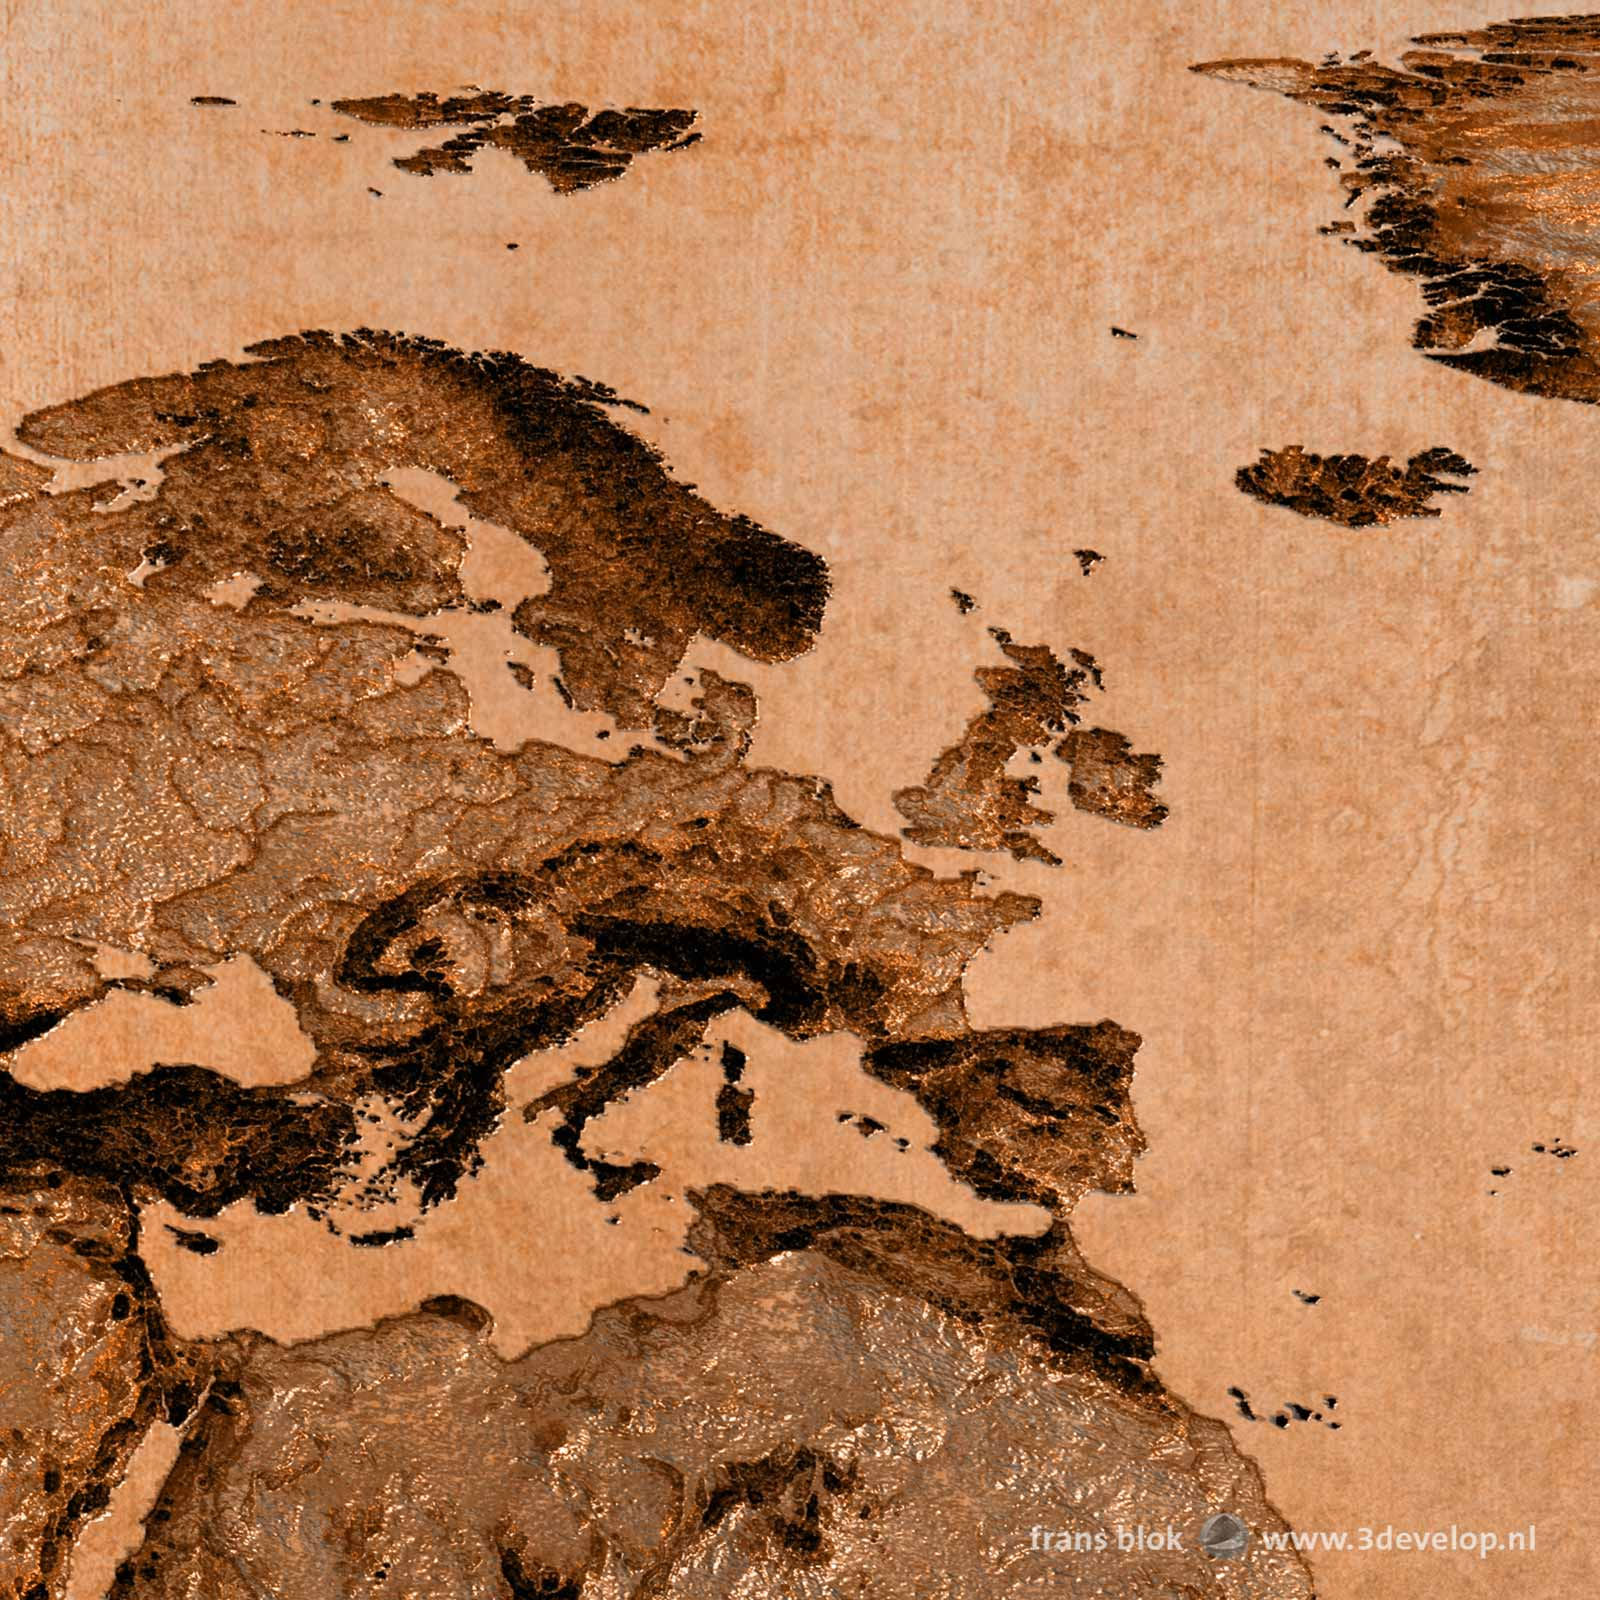 Part of a bronze mirrored world map, showing Europe, North Africa, the Mediterranean and a part of Greenland